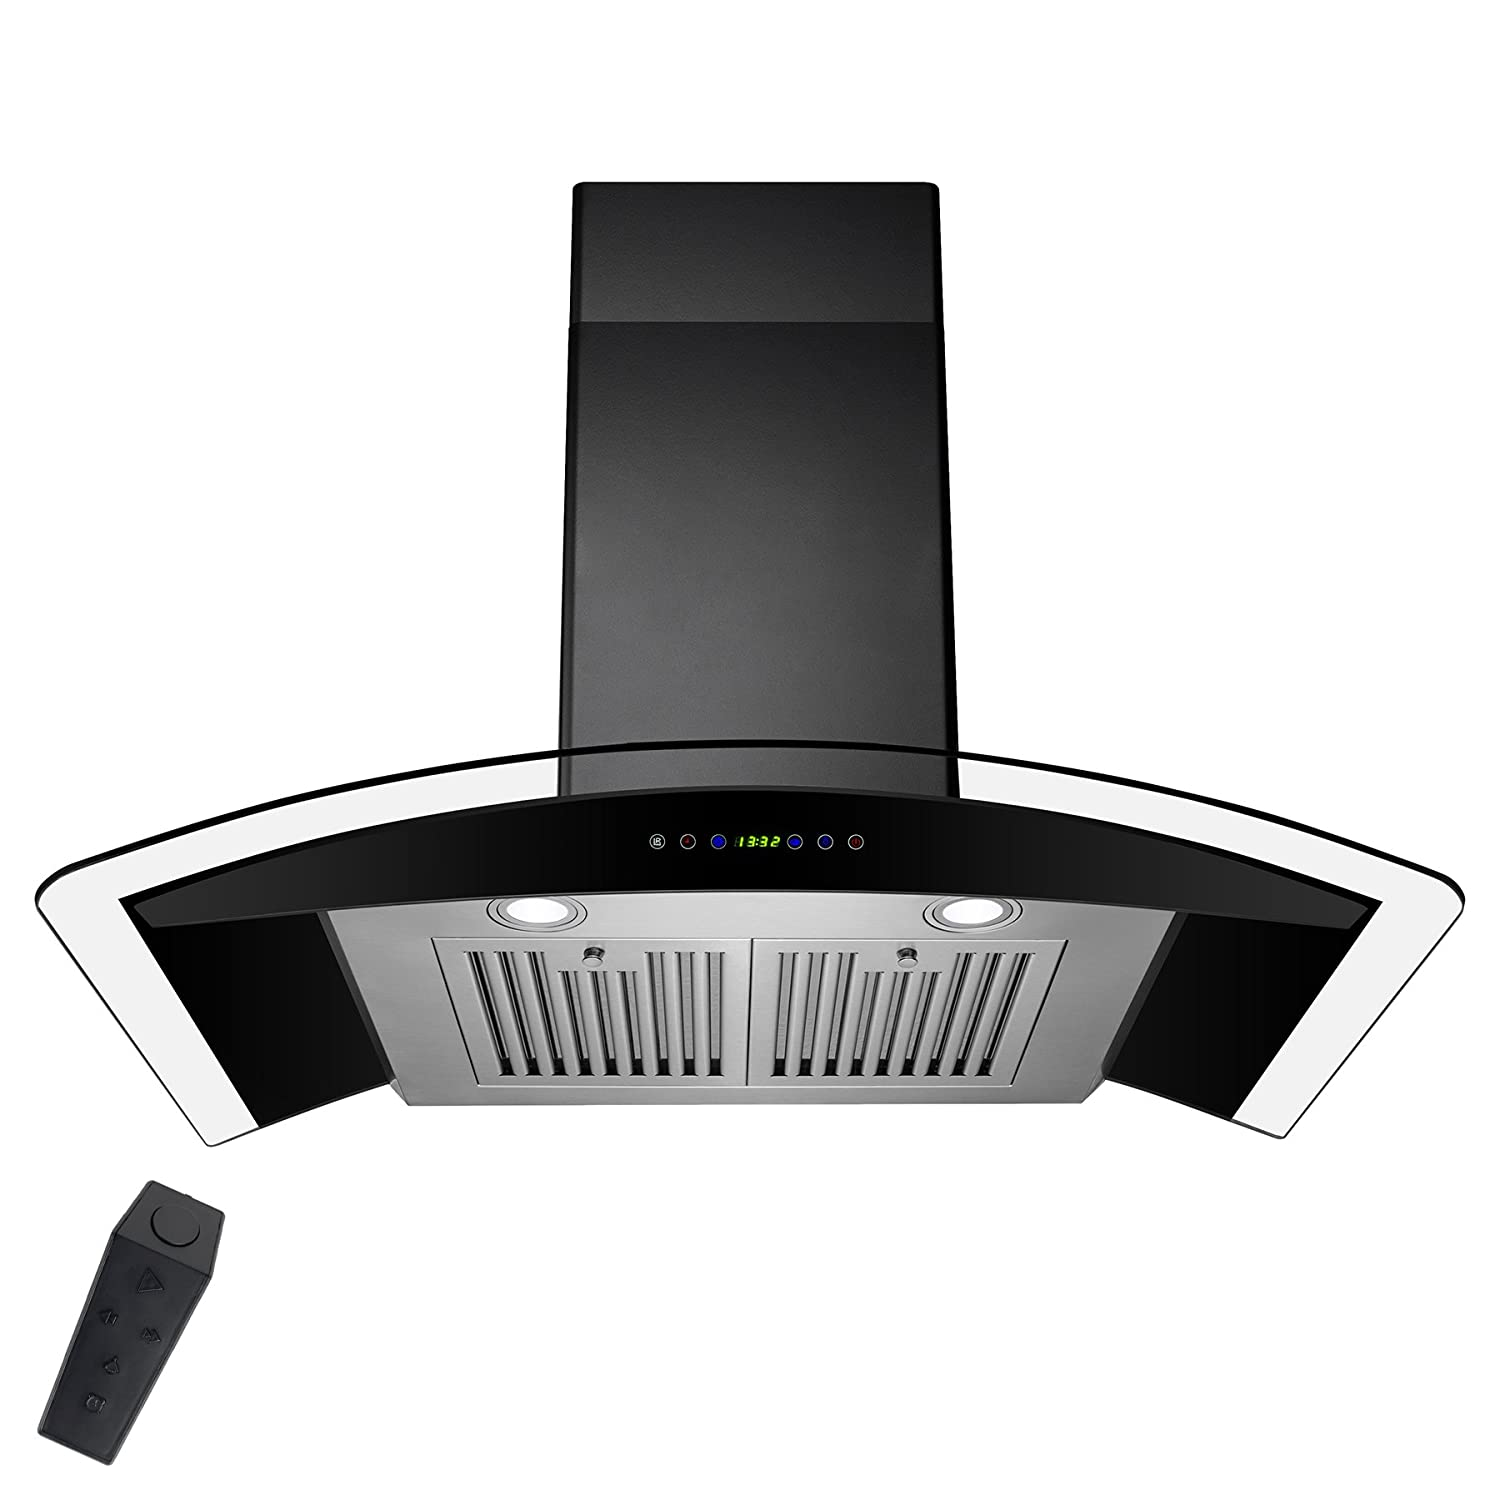 AKDY 36 Stainless Steel Tempered Glass Wall Mount Range Hood With Remote Control Touch Button Control AK-RH0318